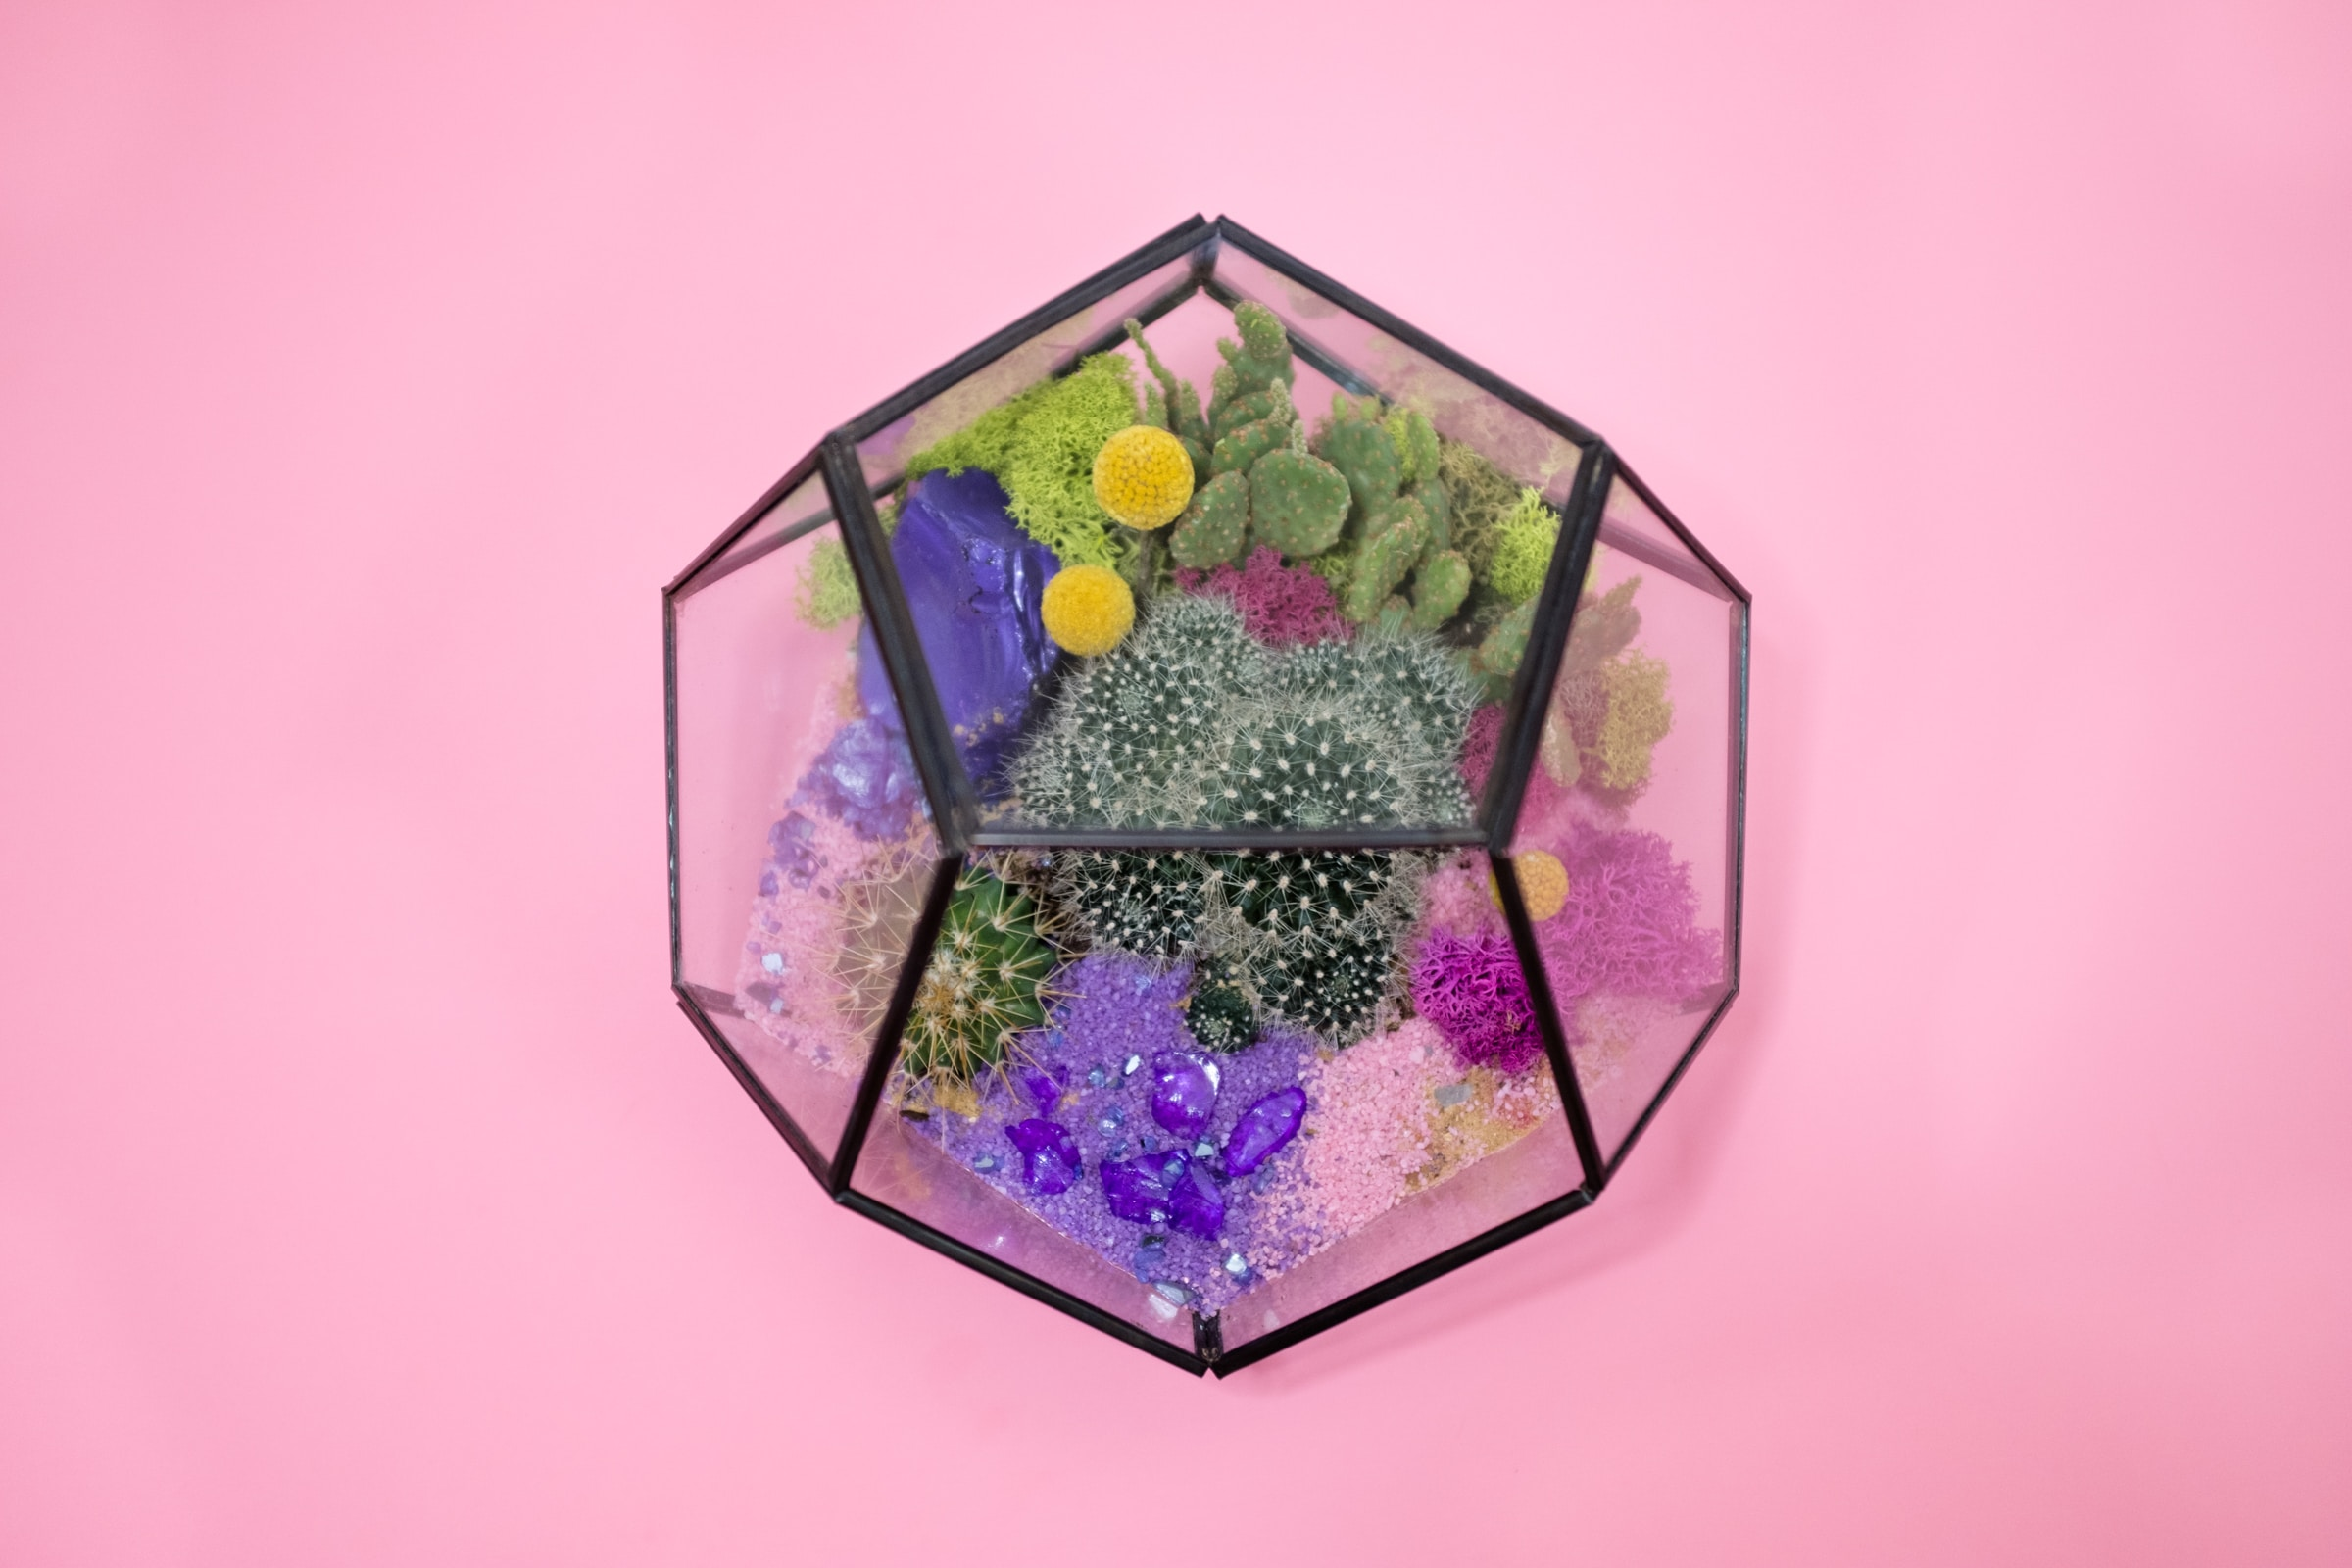 Best Terrariums Buying Guide and Reviews